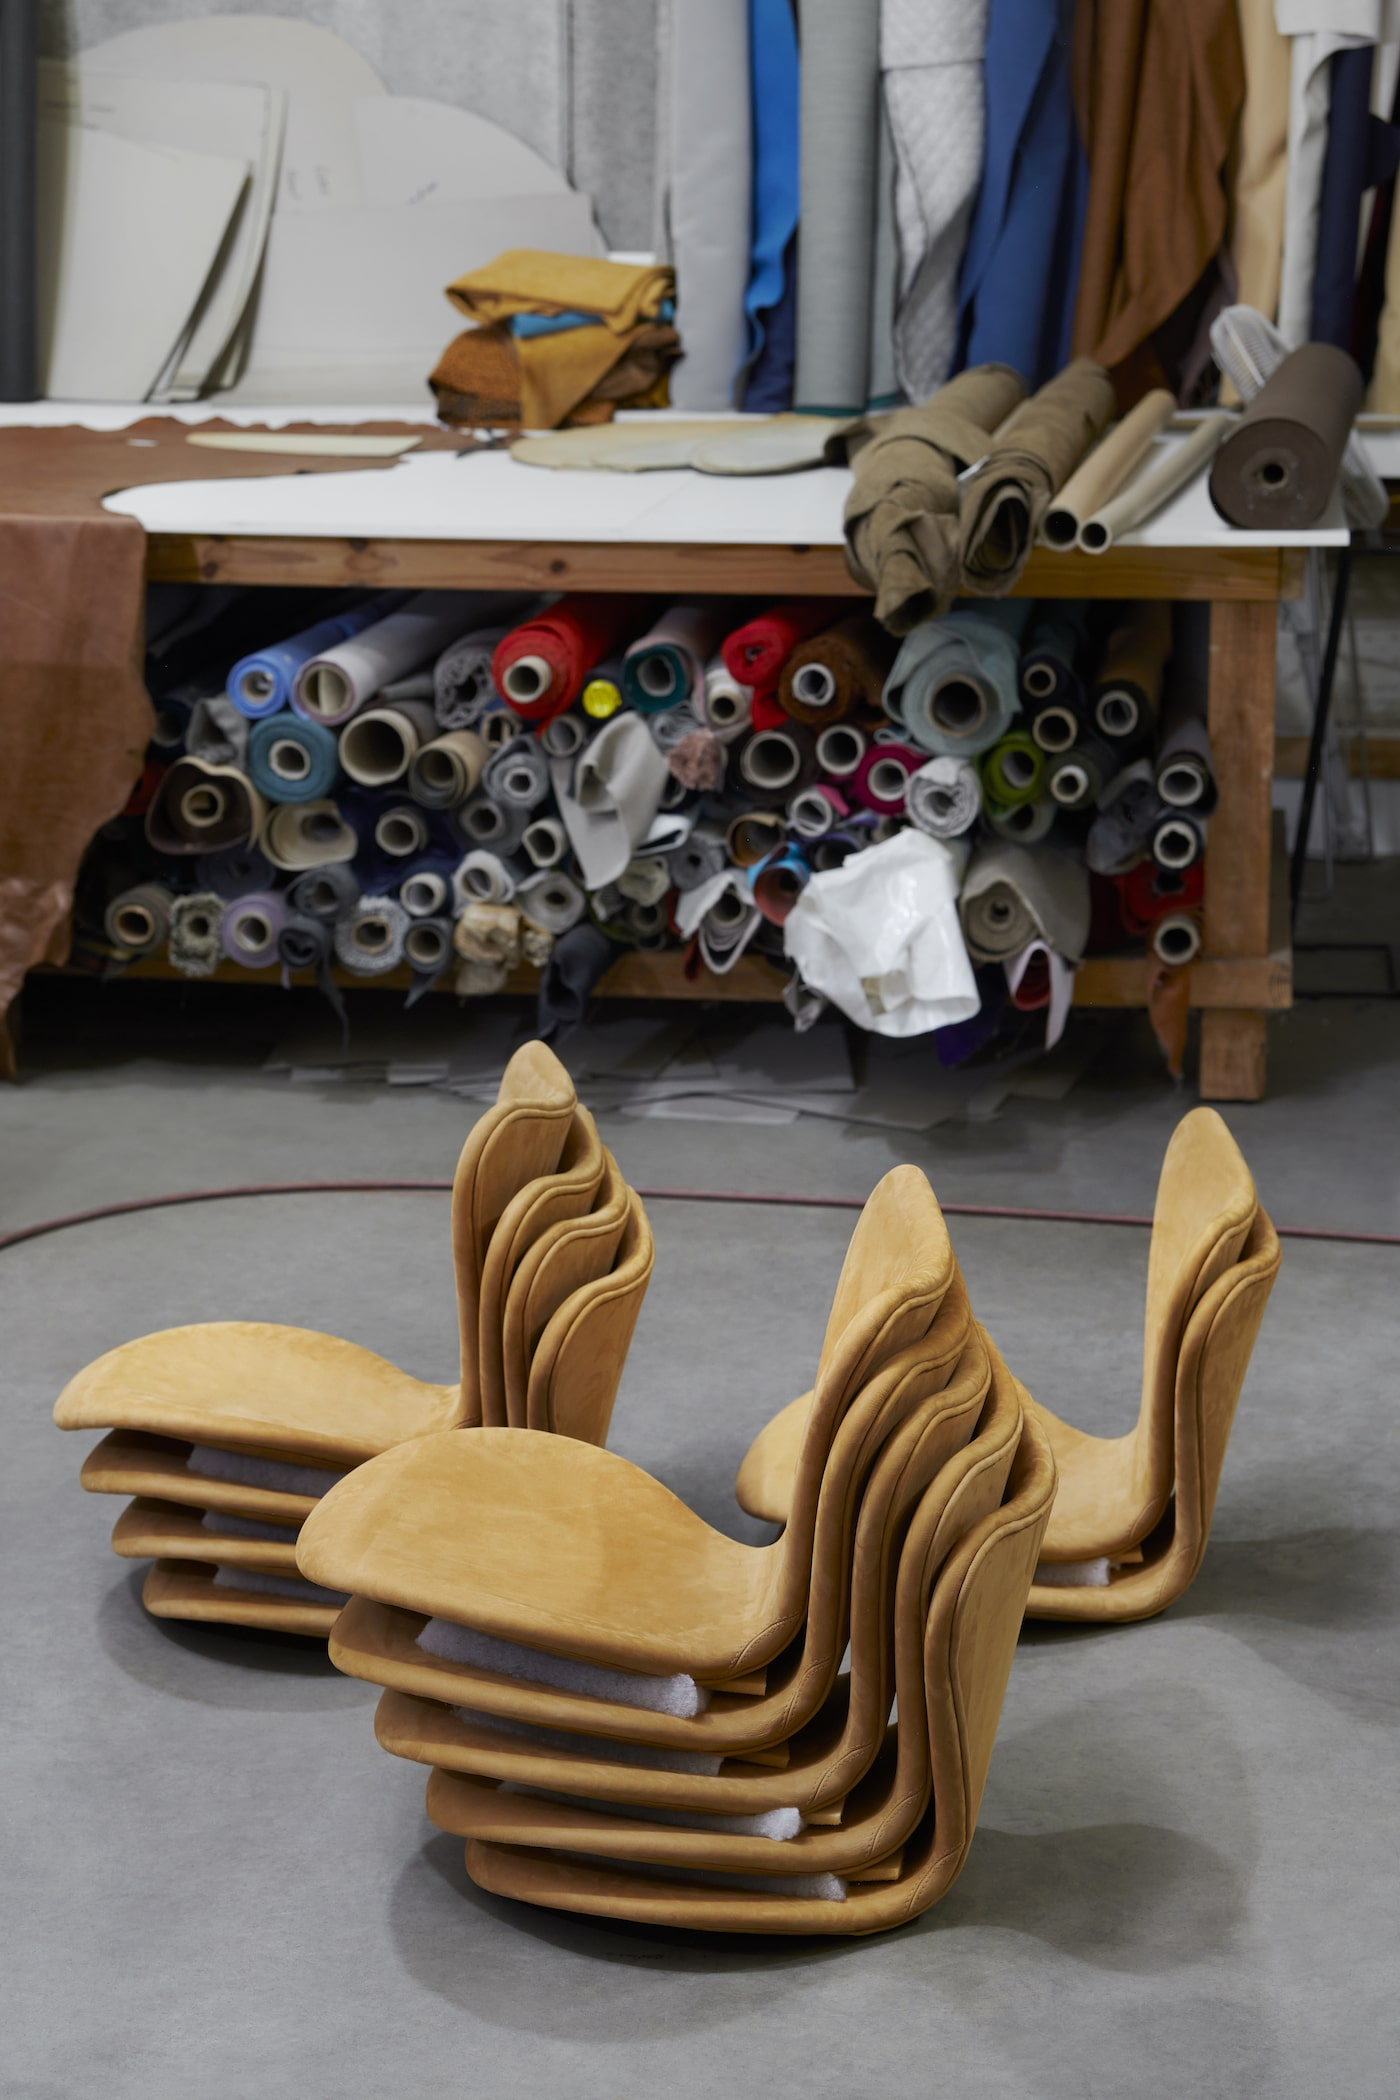 Arne Jacobsen Series 7 chairs ready for restoration